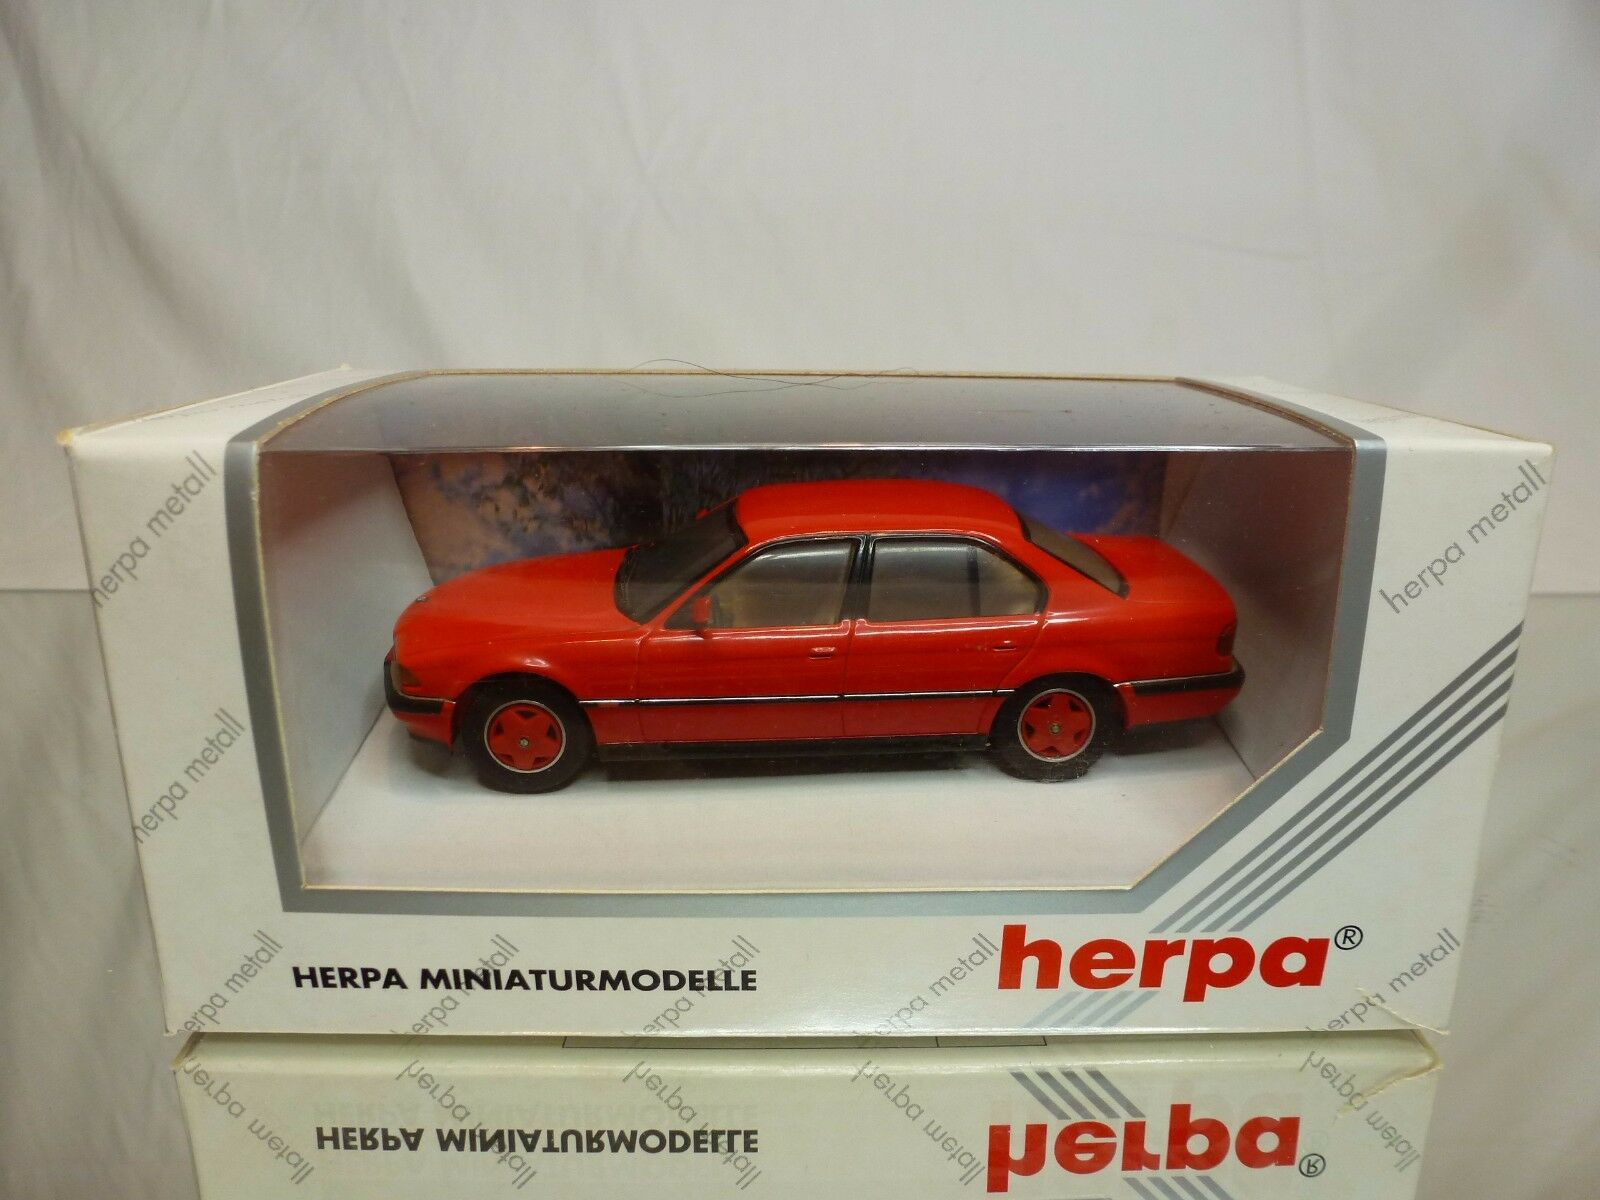 HERPA 70225 BMW 740i - E38 - red 1 43 - VERY GOOD IN BOX